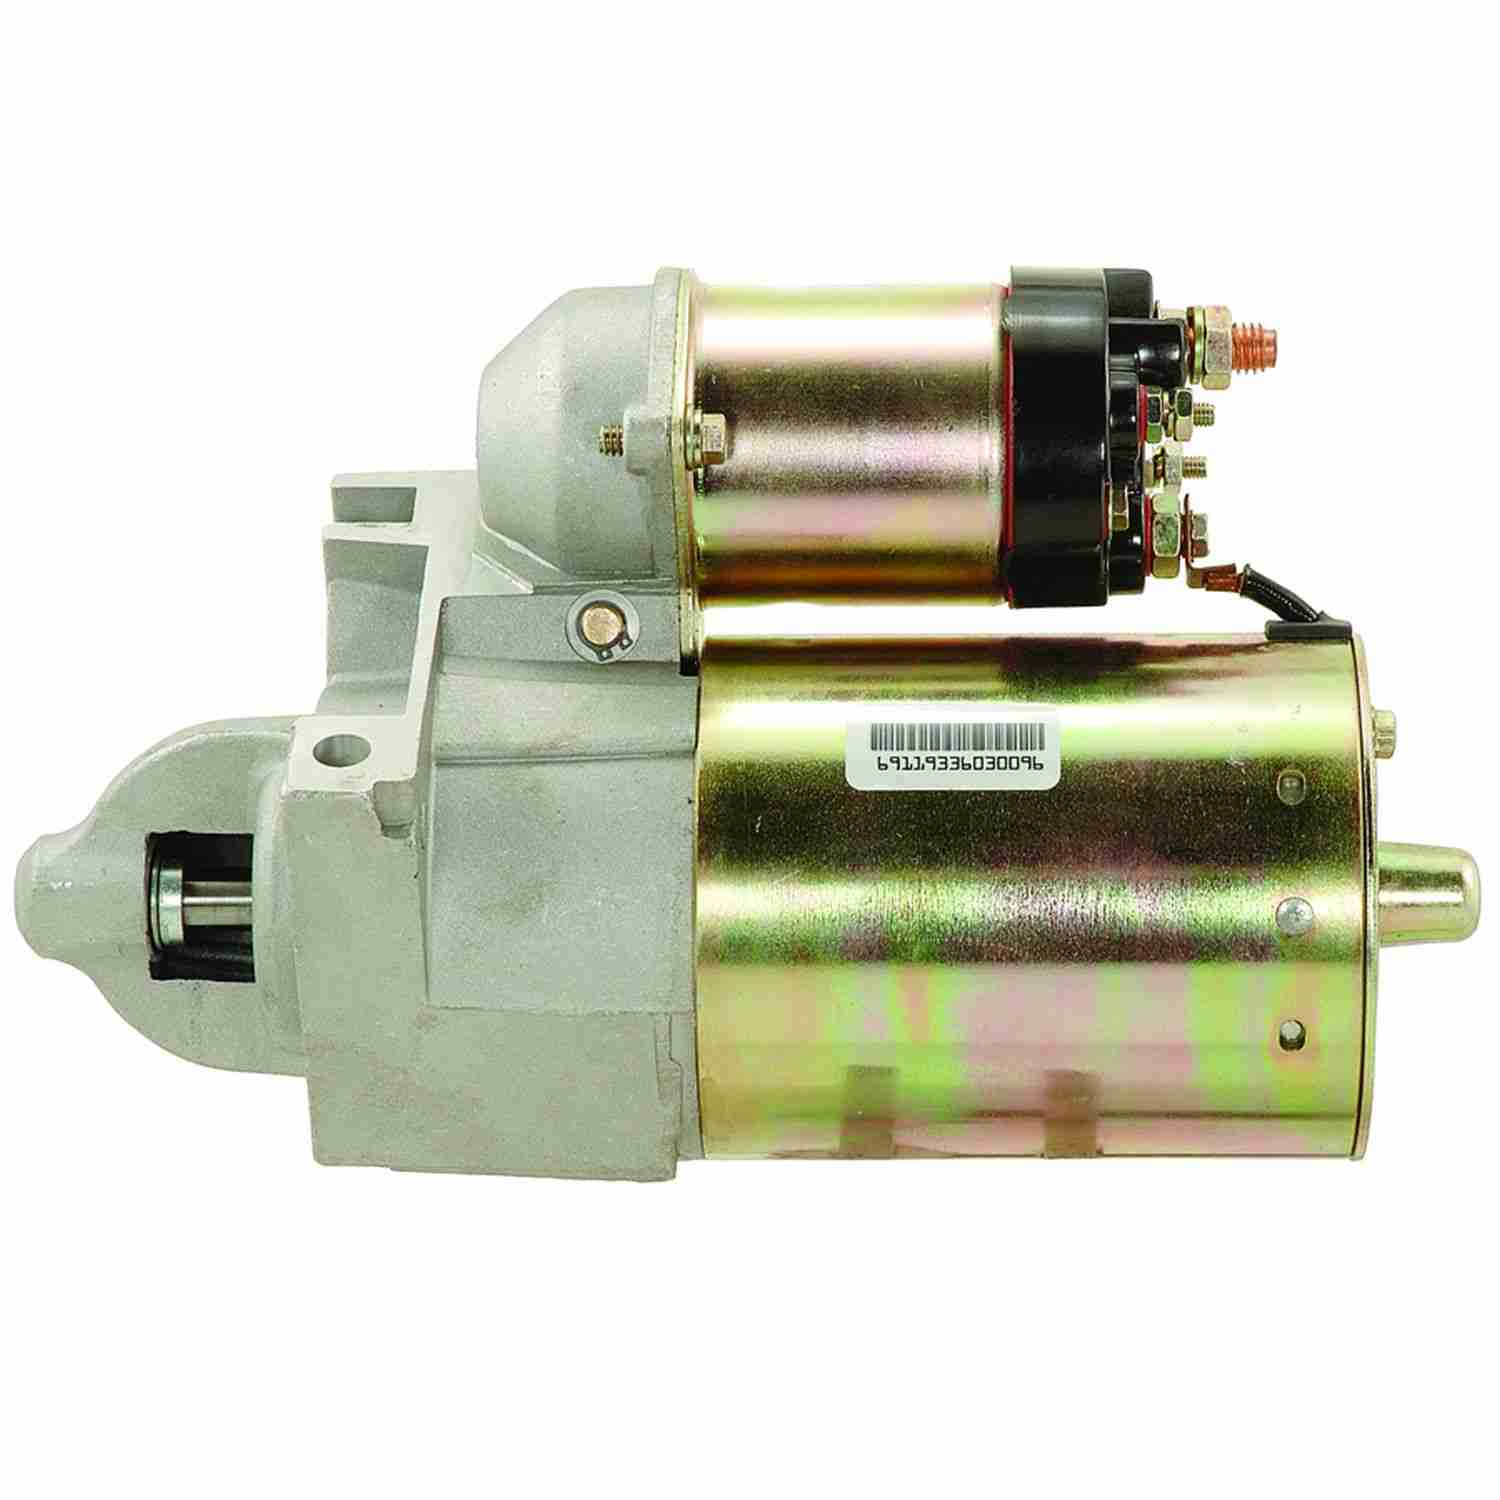 ACDELCO GOLD/PROFESSIONAL - Starter Motor - DCC 337-1017